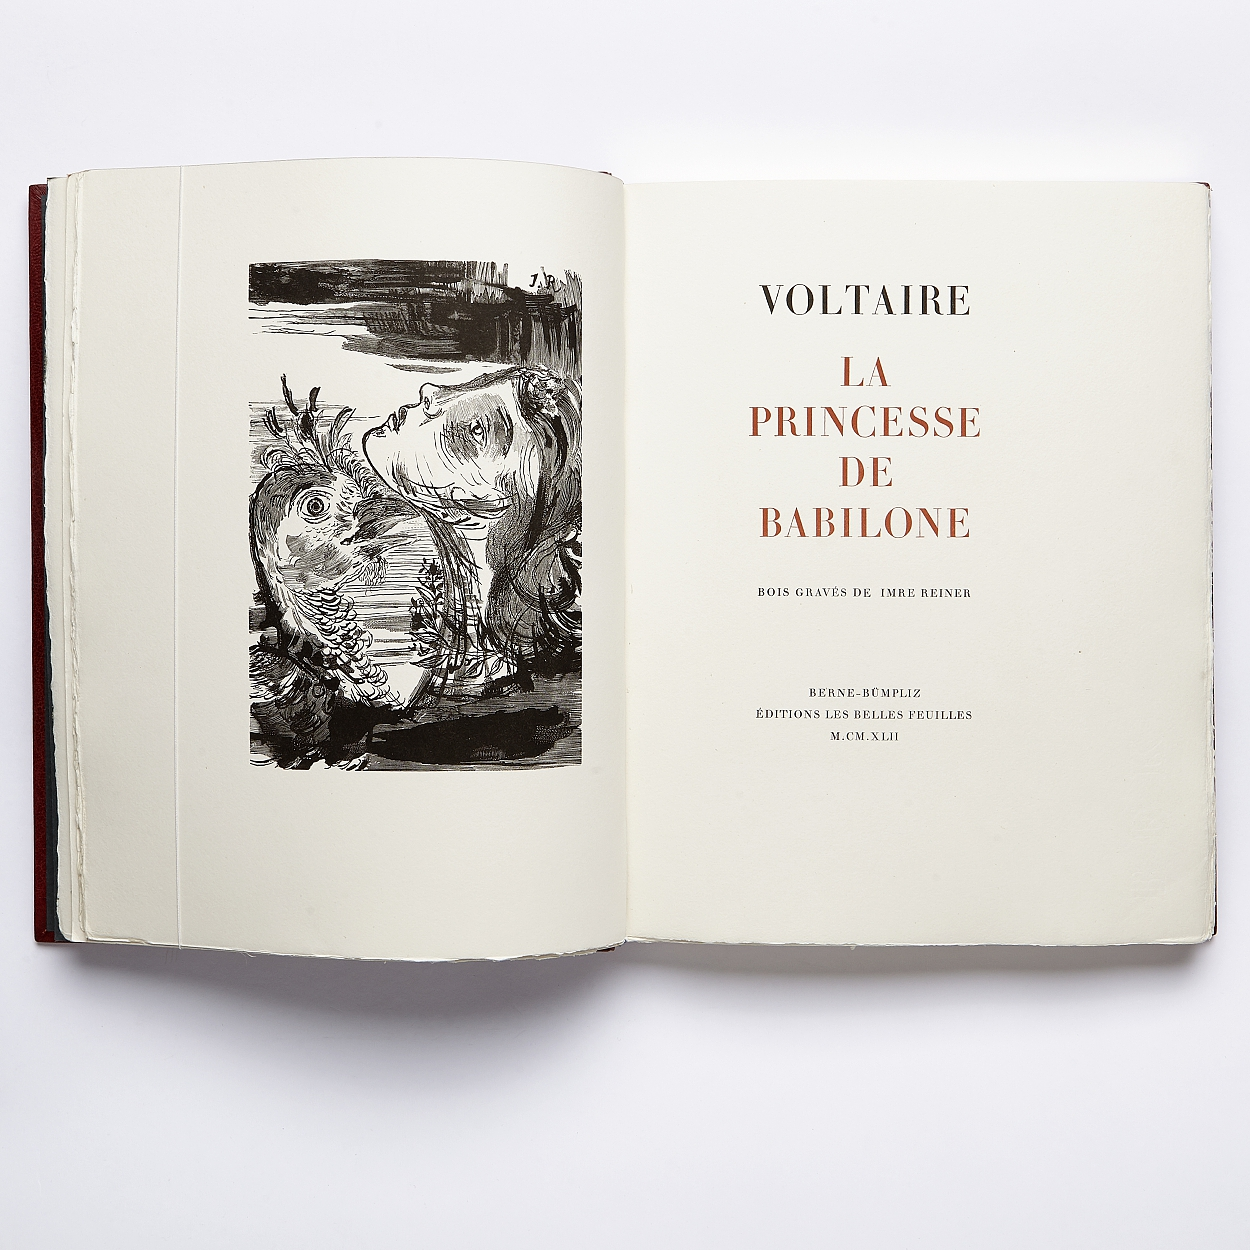 Voltaire illustrated by Reiner in binding by Olsen